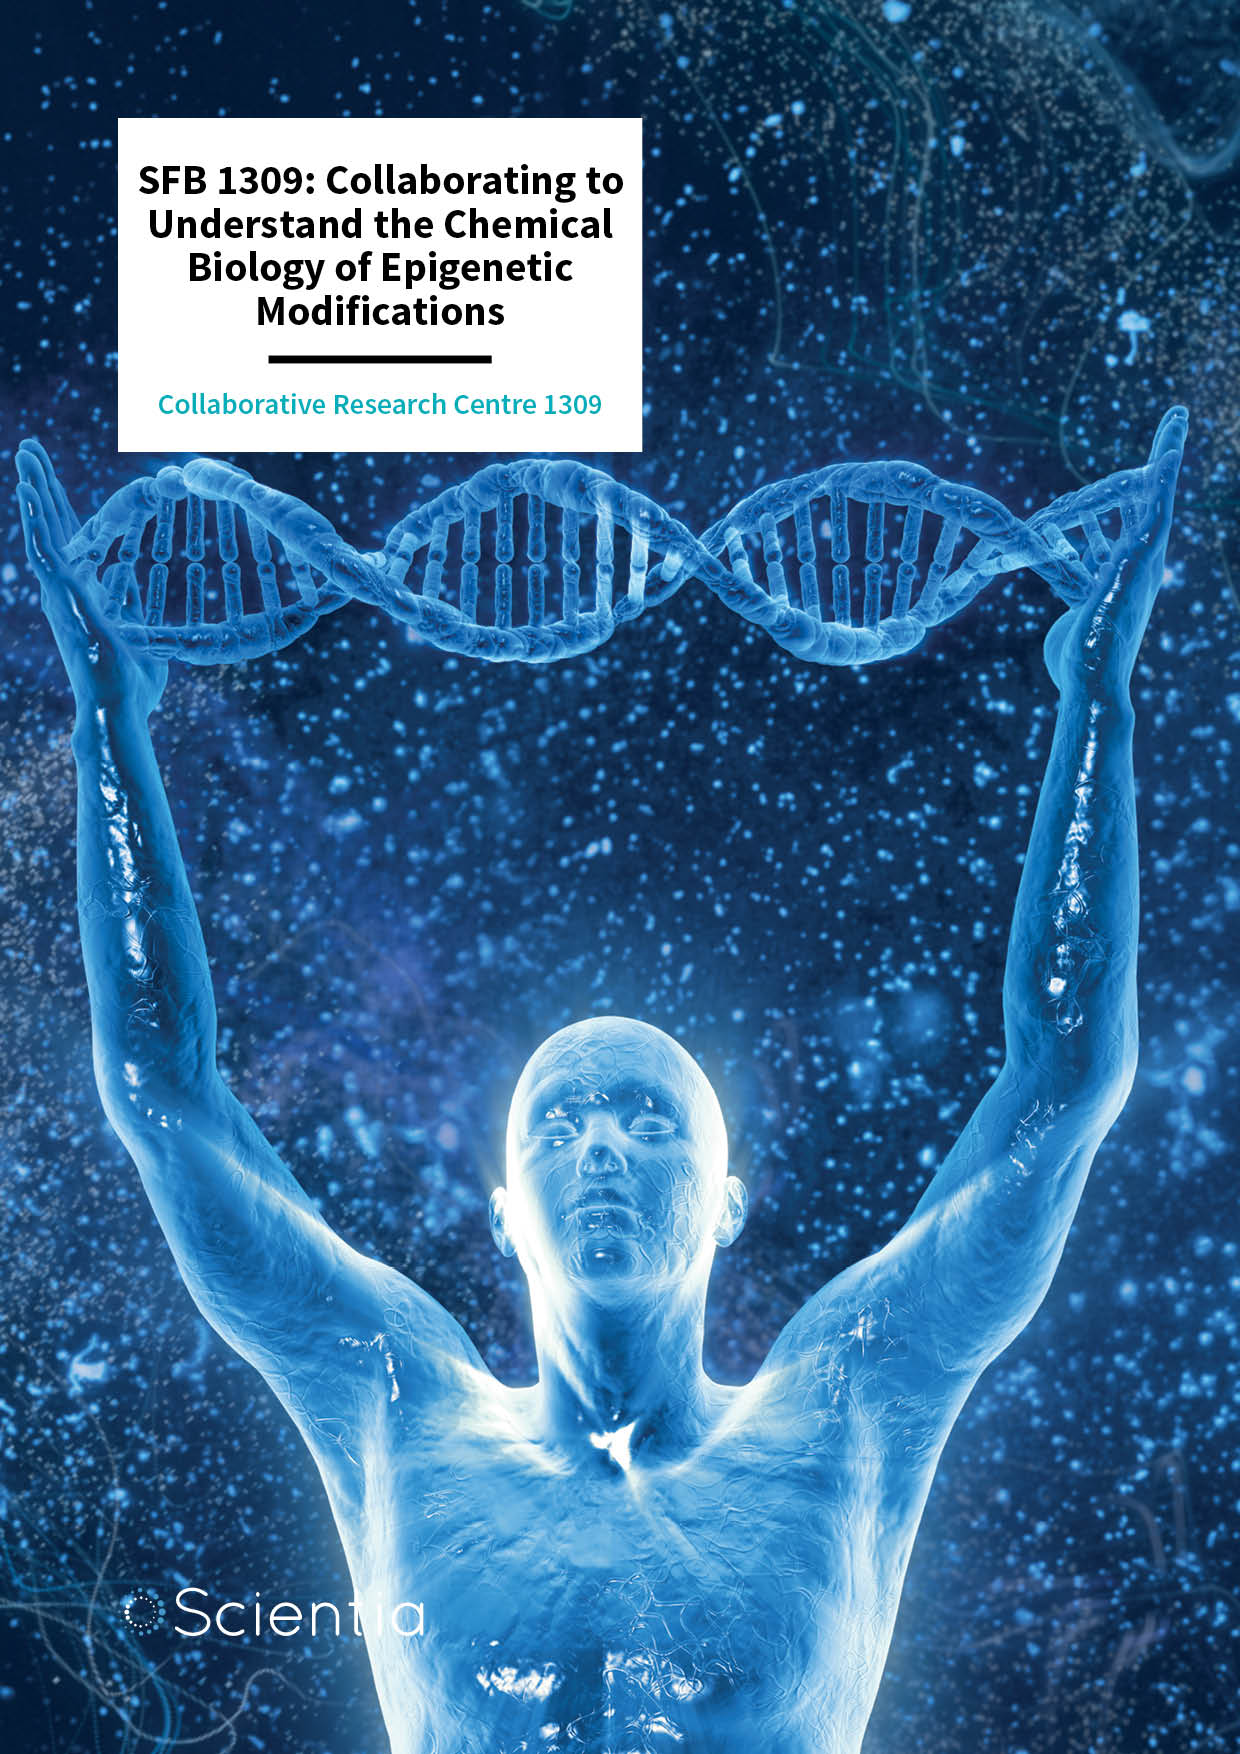 SFB 1309: Collaborating to Understand the Chemical Biology of Epigenetic Modifications